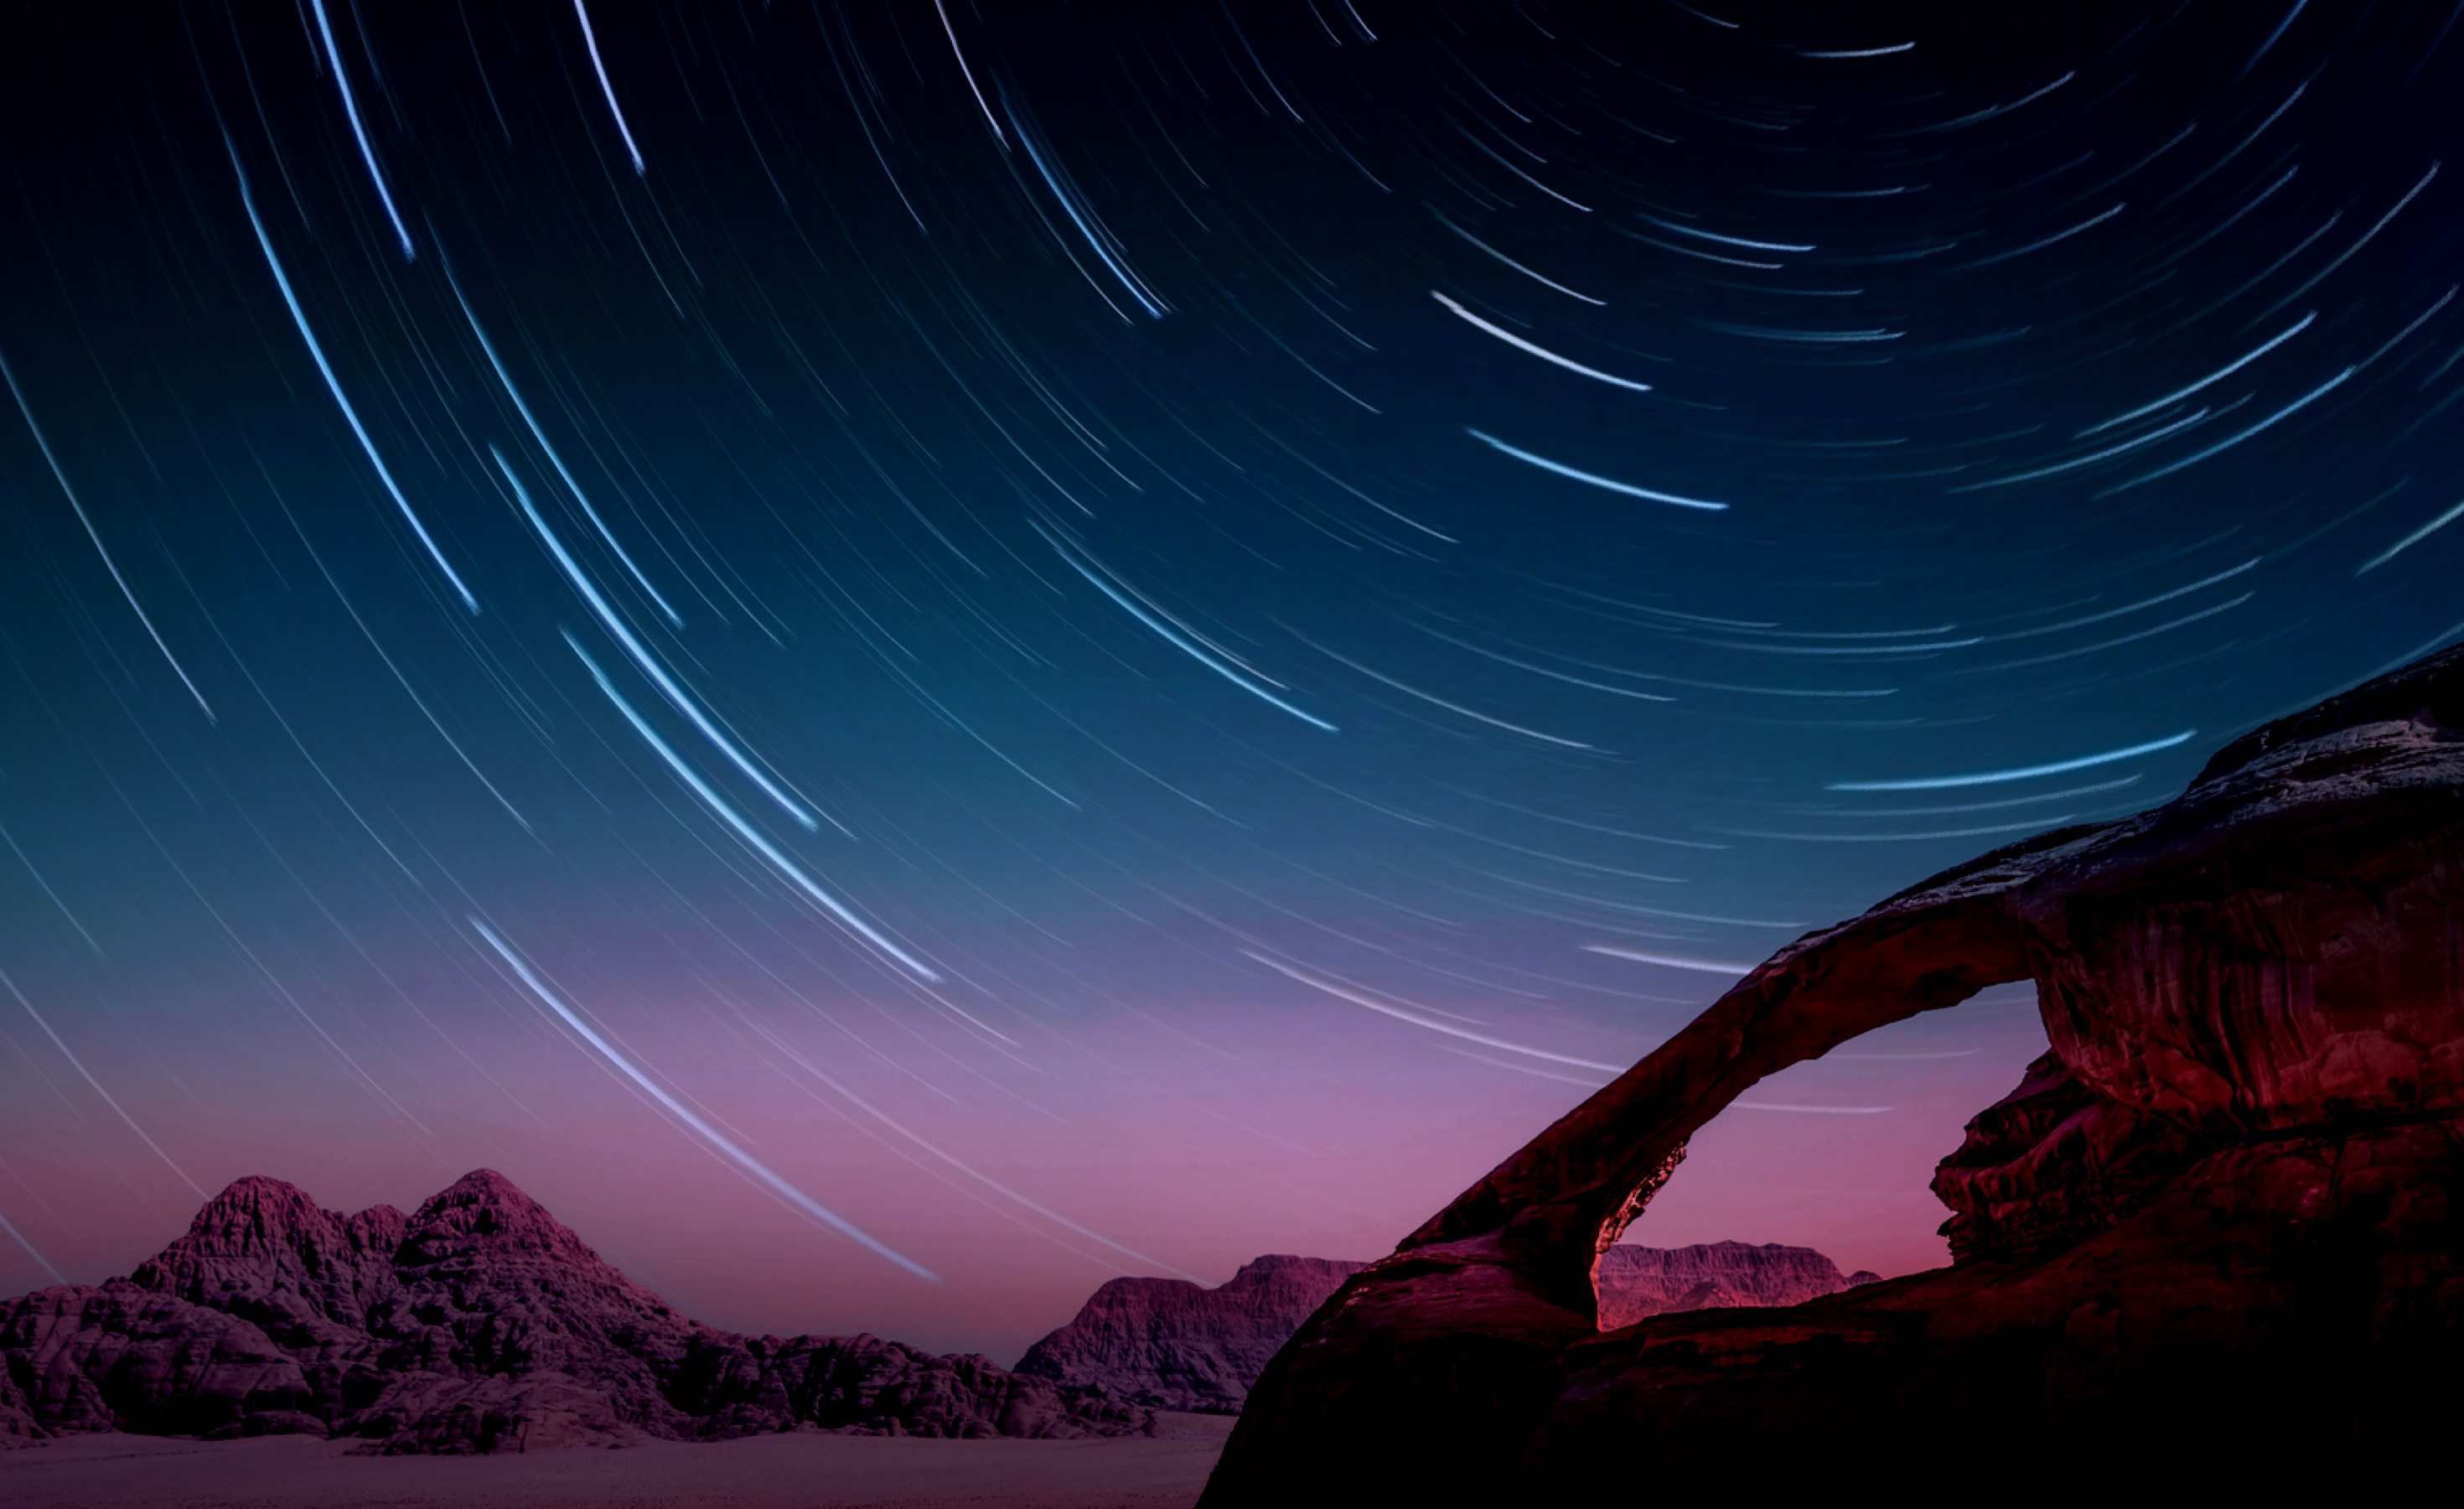 Image of mountains at dusk with stars